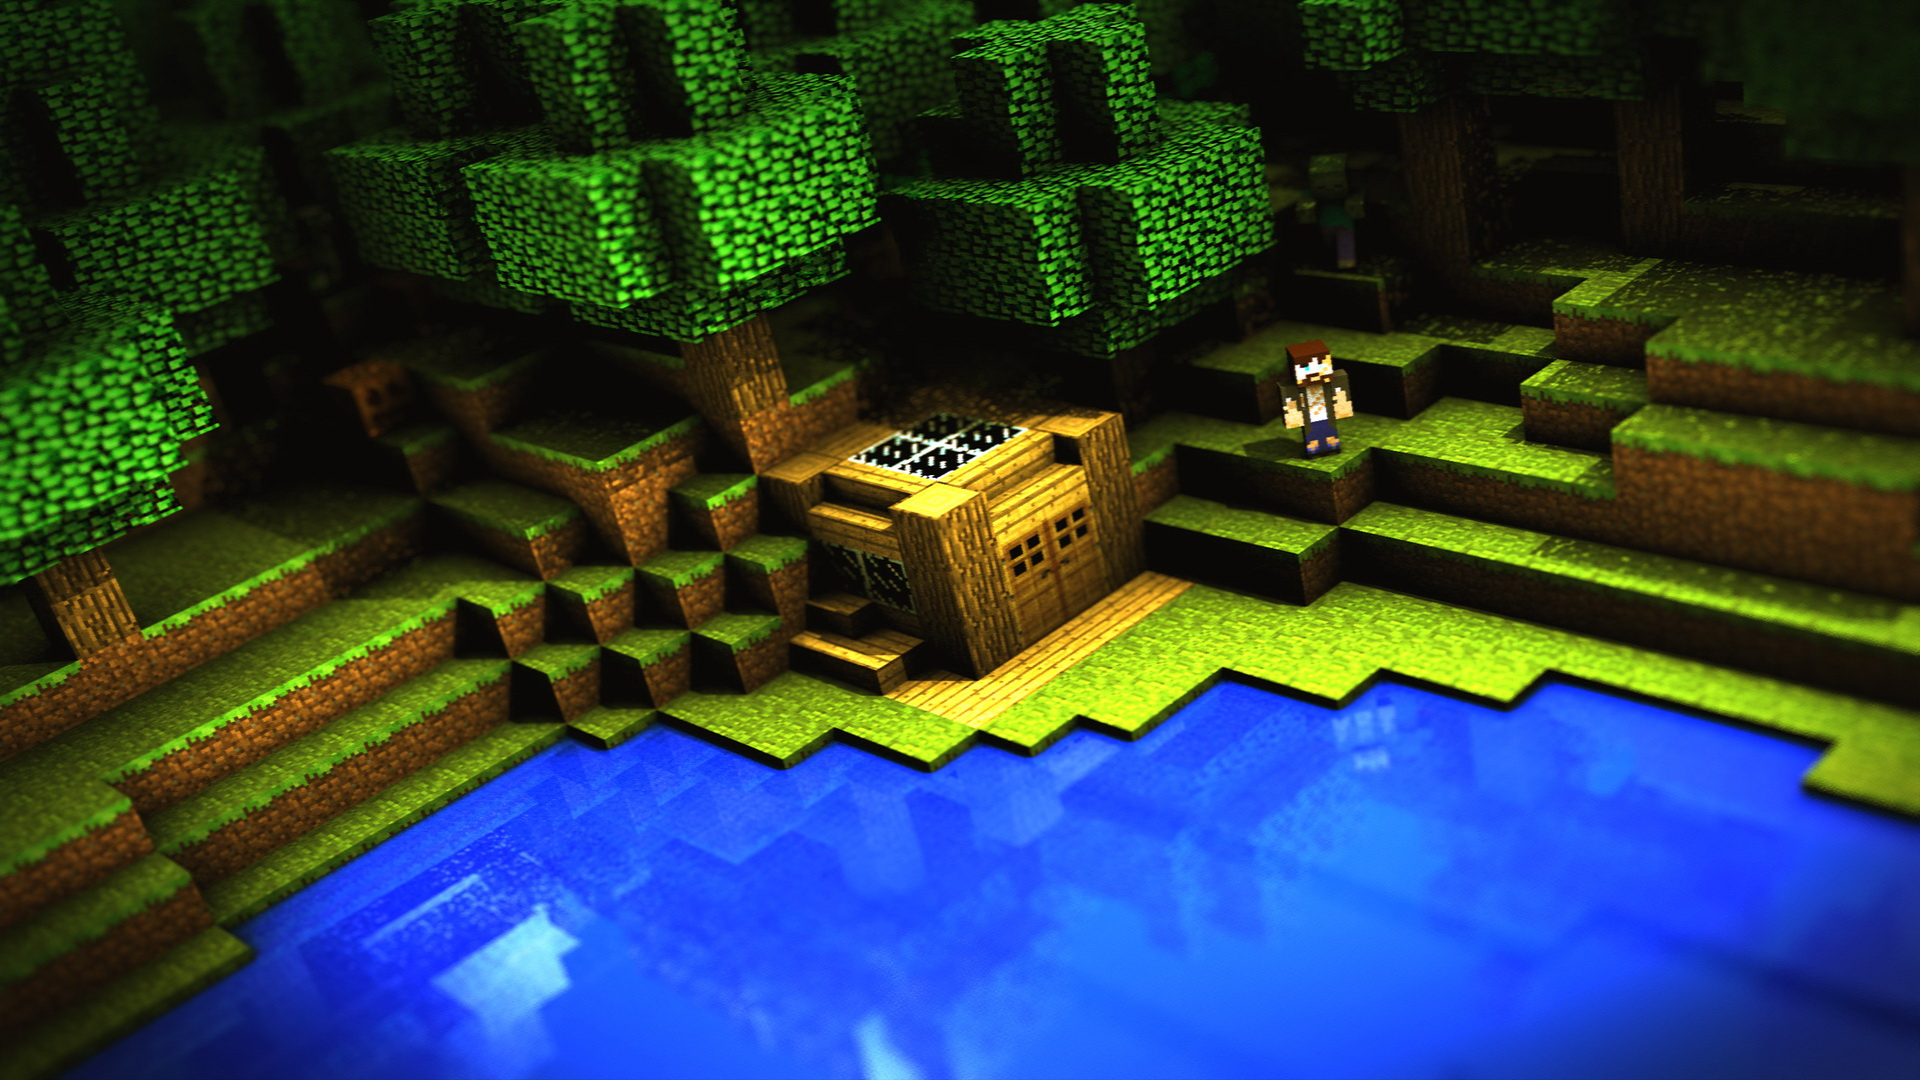 Wonderful Wallpaper Minecraft High Definition - rS9j0W  Collection_204244.jpg